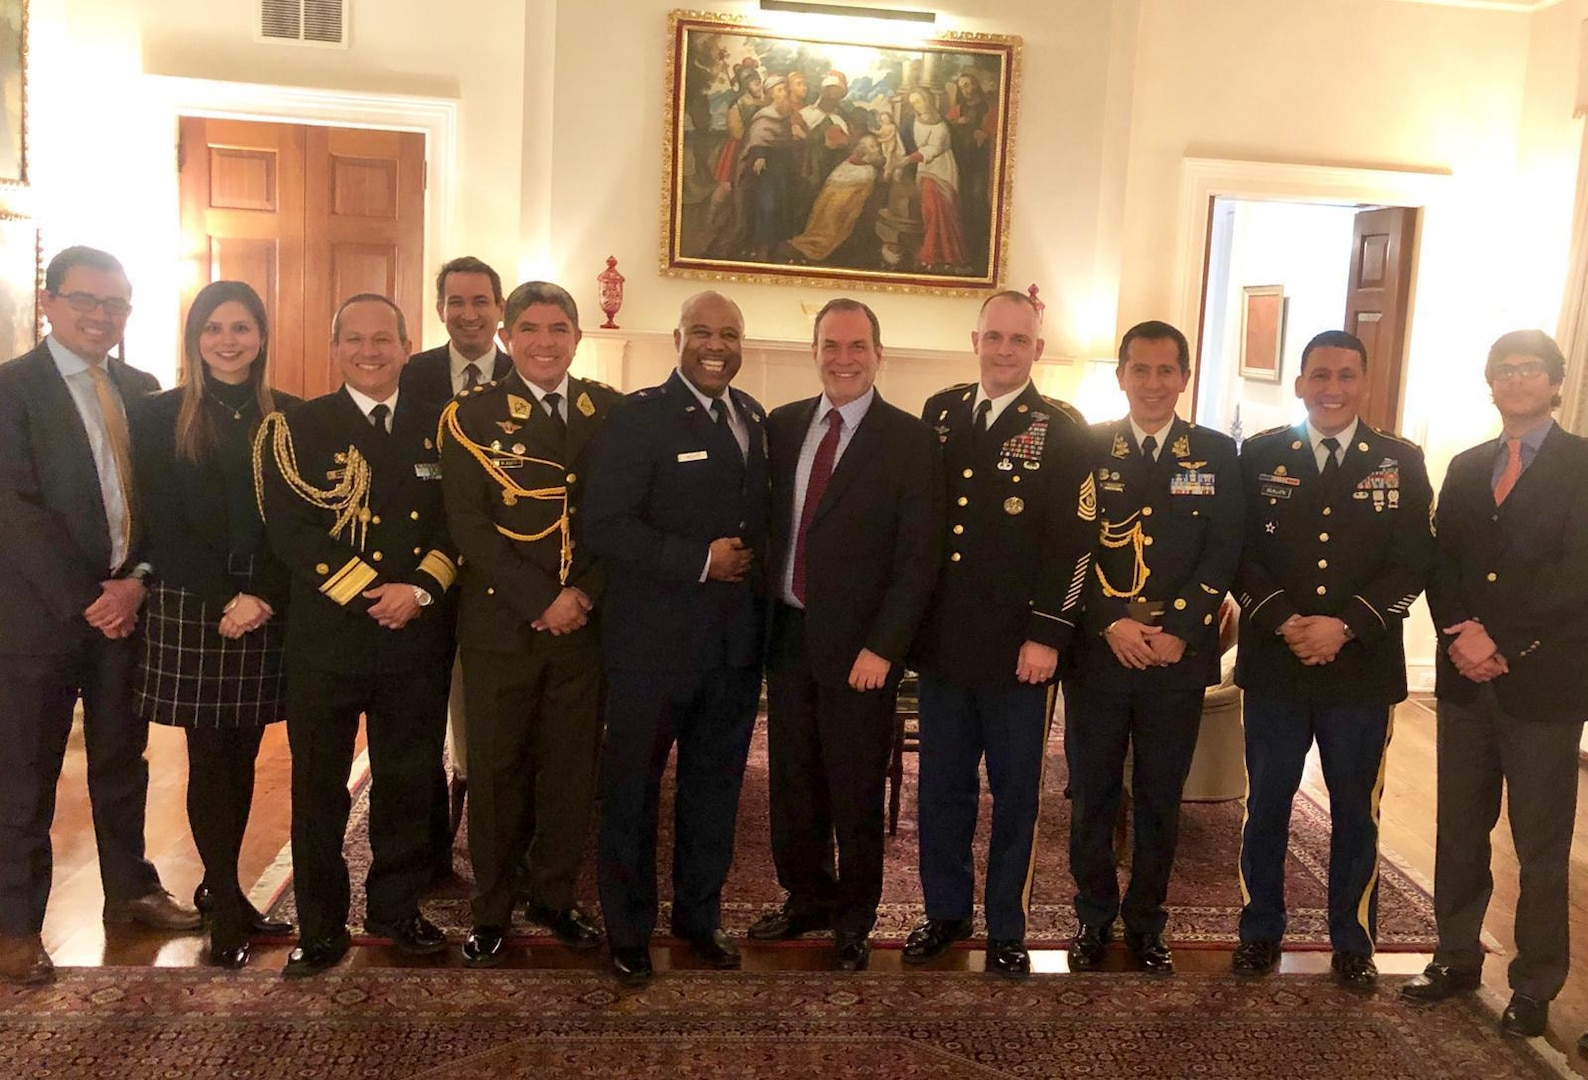 Members of the West Virginia National Guard pose for a photo with the Peruvian Chargé d'Affaires, Minister Agustín De Madalengoitia, and other Defense Attachés and diplomats Feb. 19, 2019, at the Peruvian Embassy in Washington, D.C.